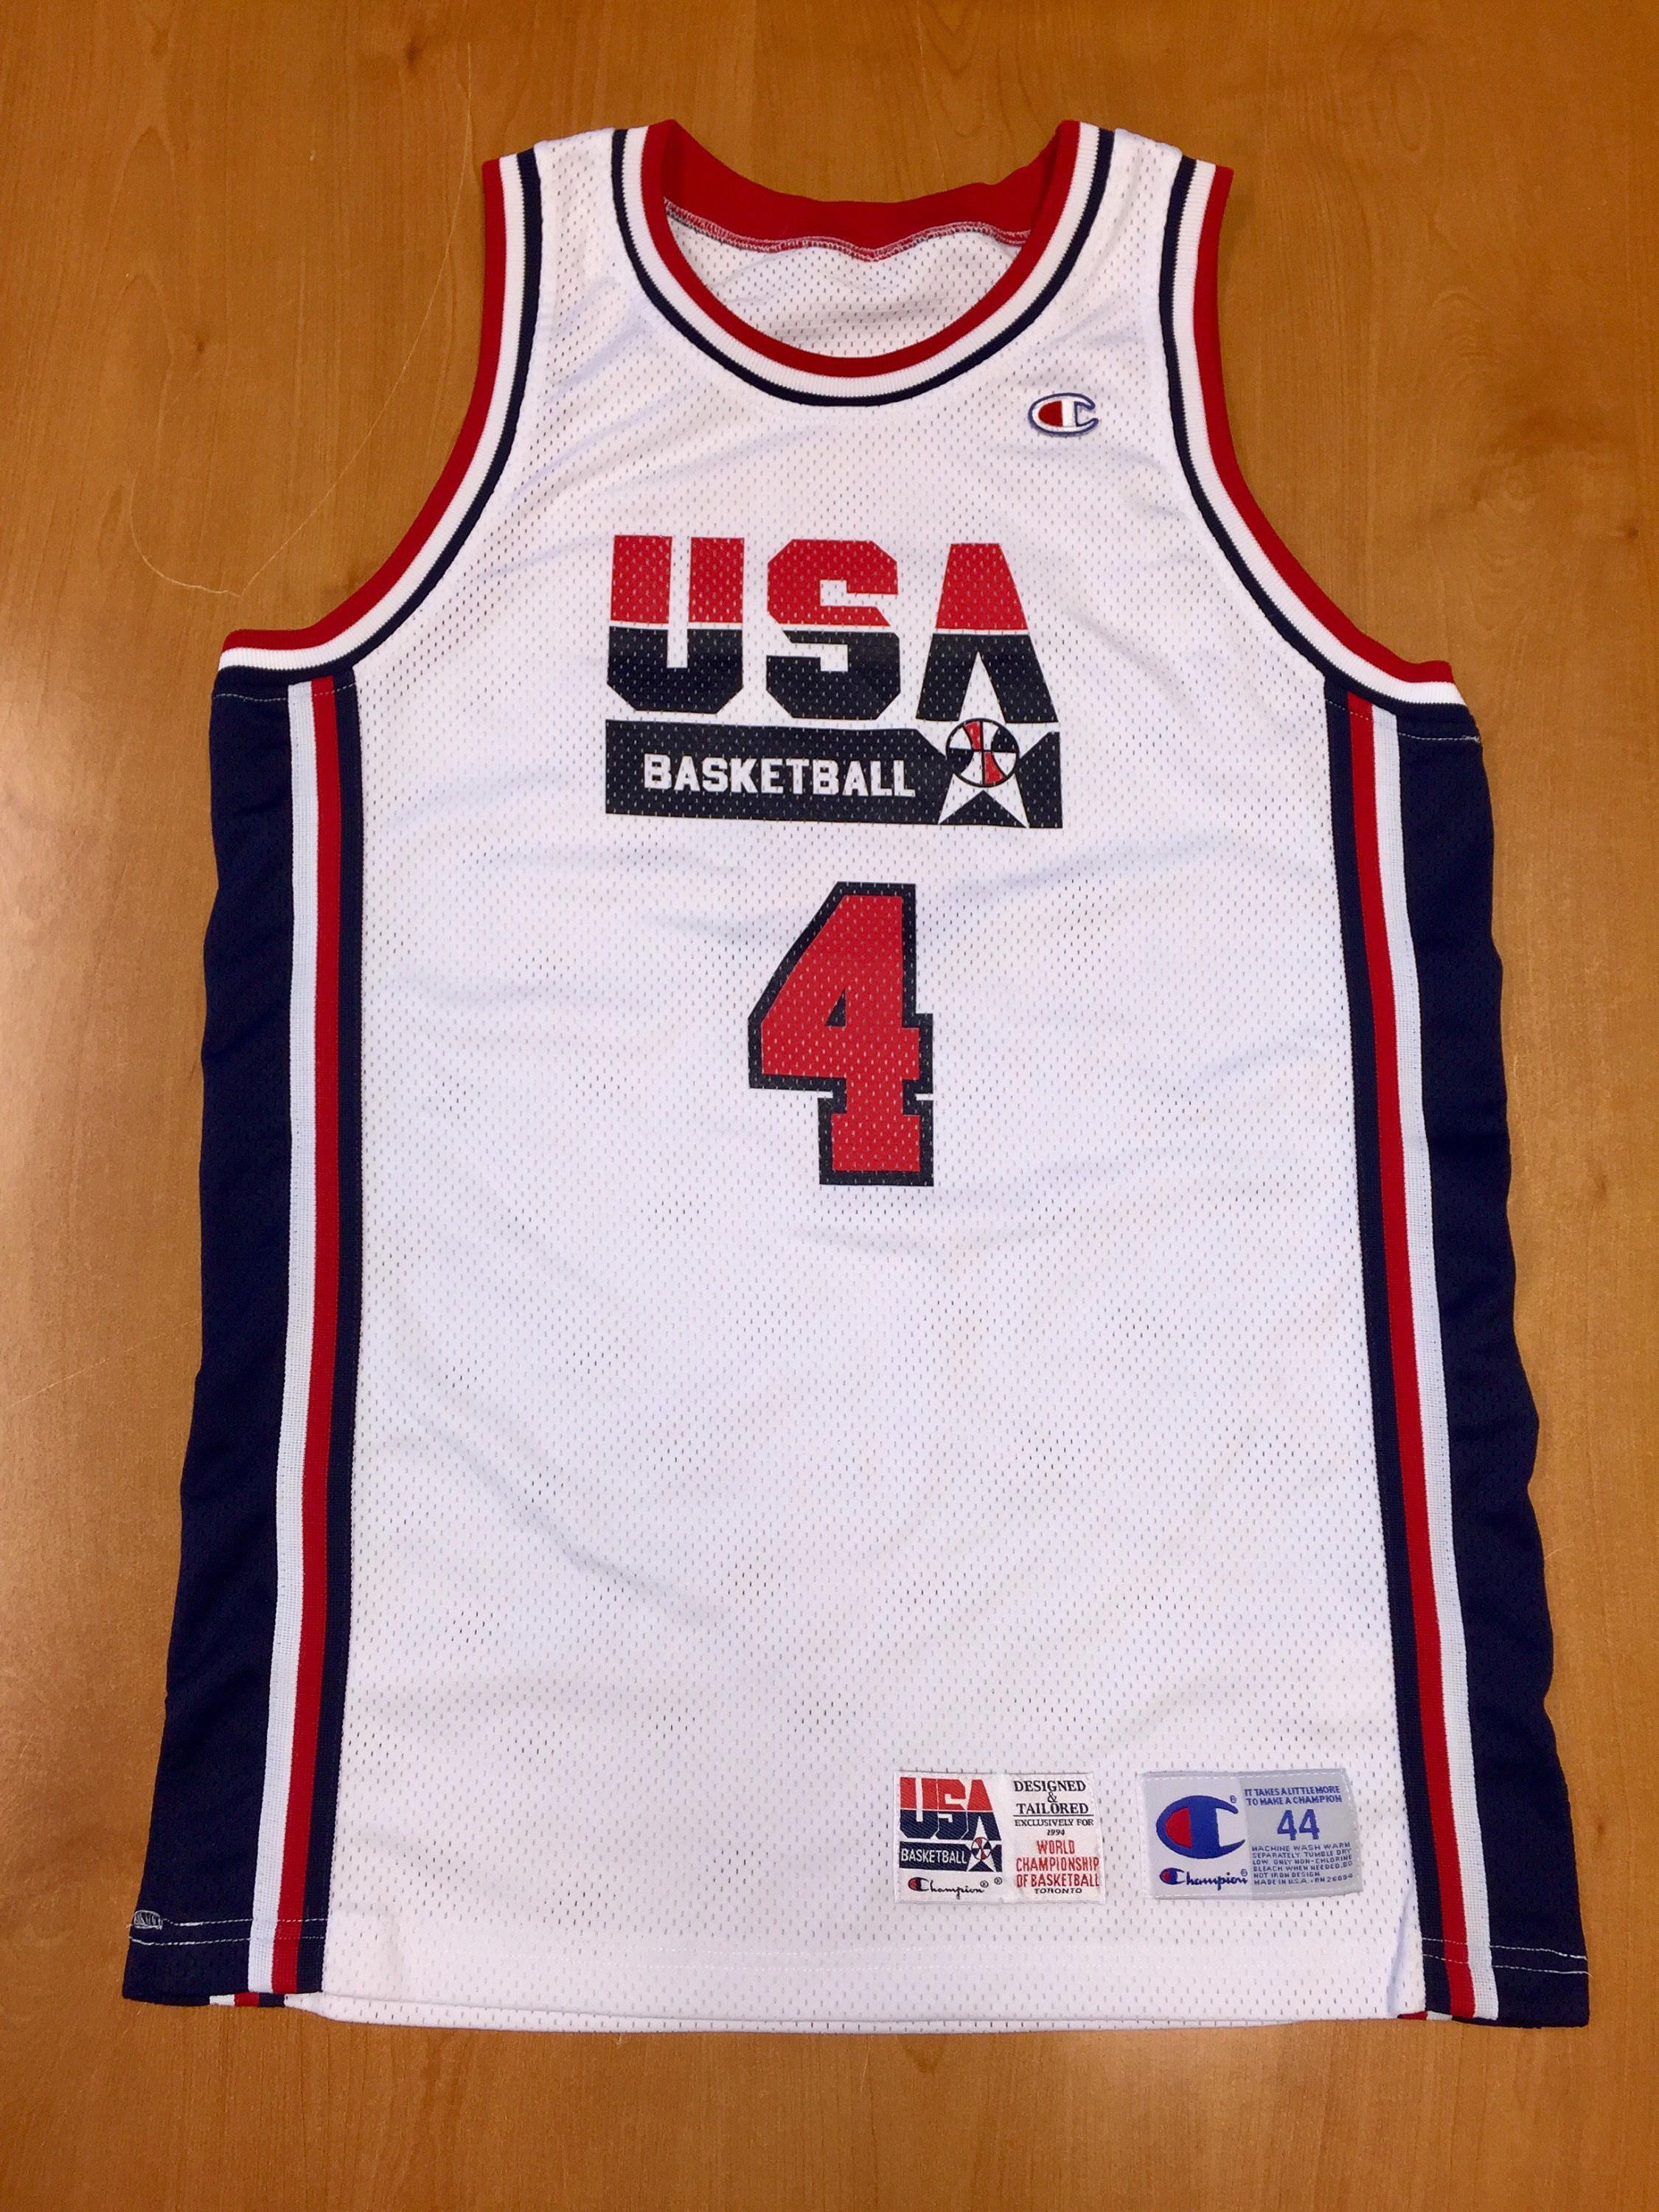 a13f7fb8a0d Vintage 1994 Joe Dumars Dream Team USA Authentic Champion Jersey Size 44  pro cut michael jordan penny hardaway charles barkley pistons nba by ...